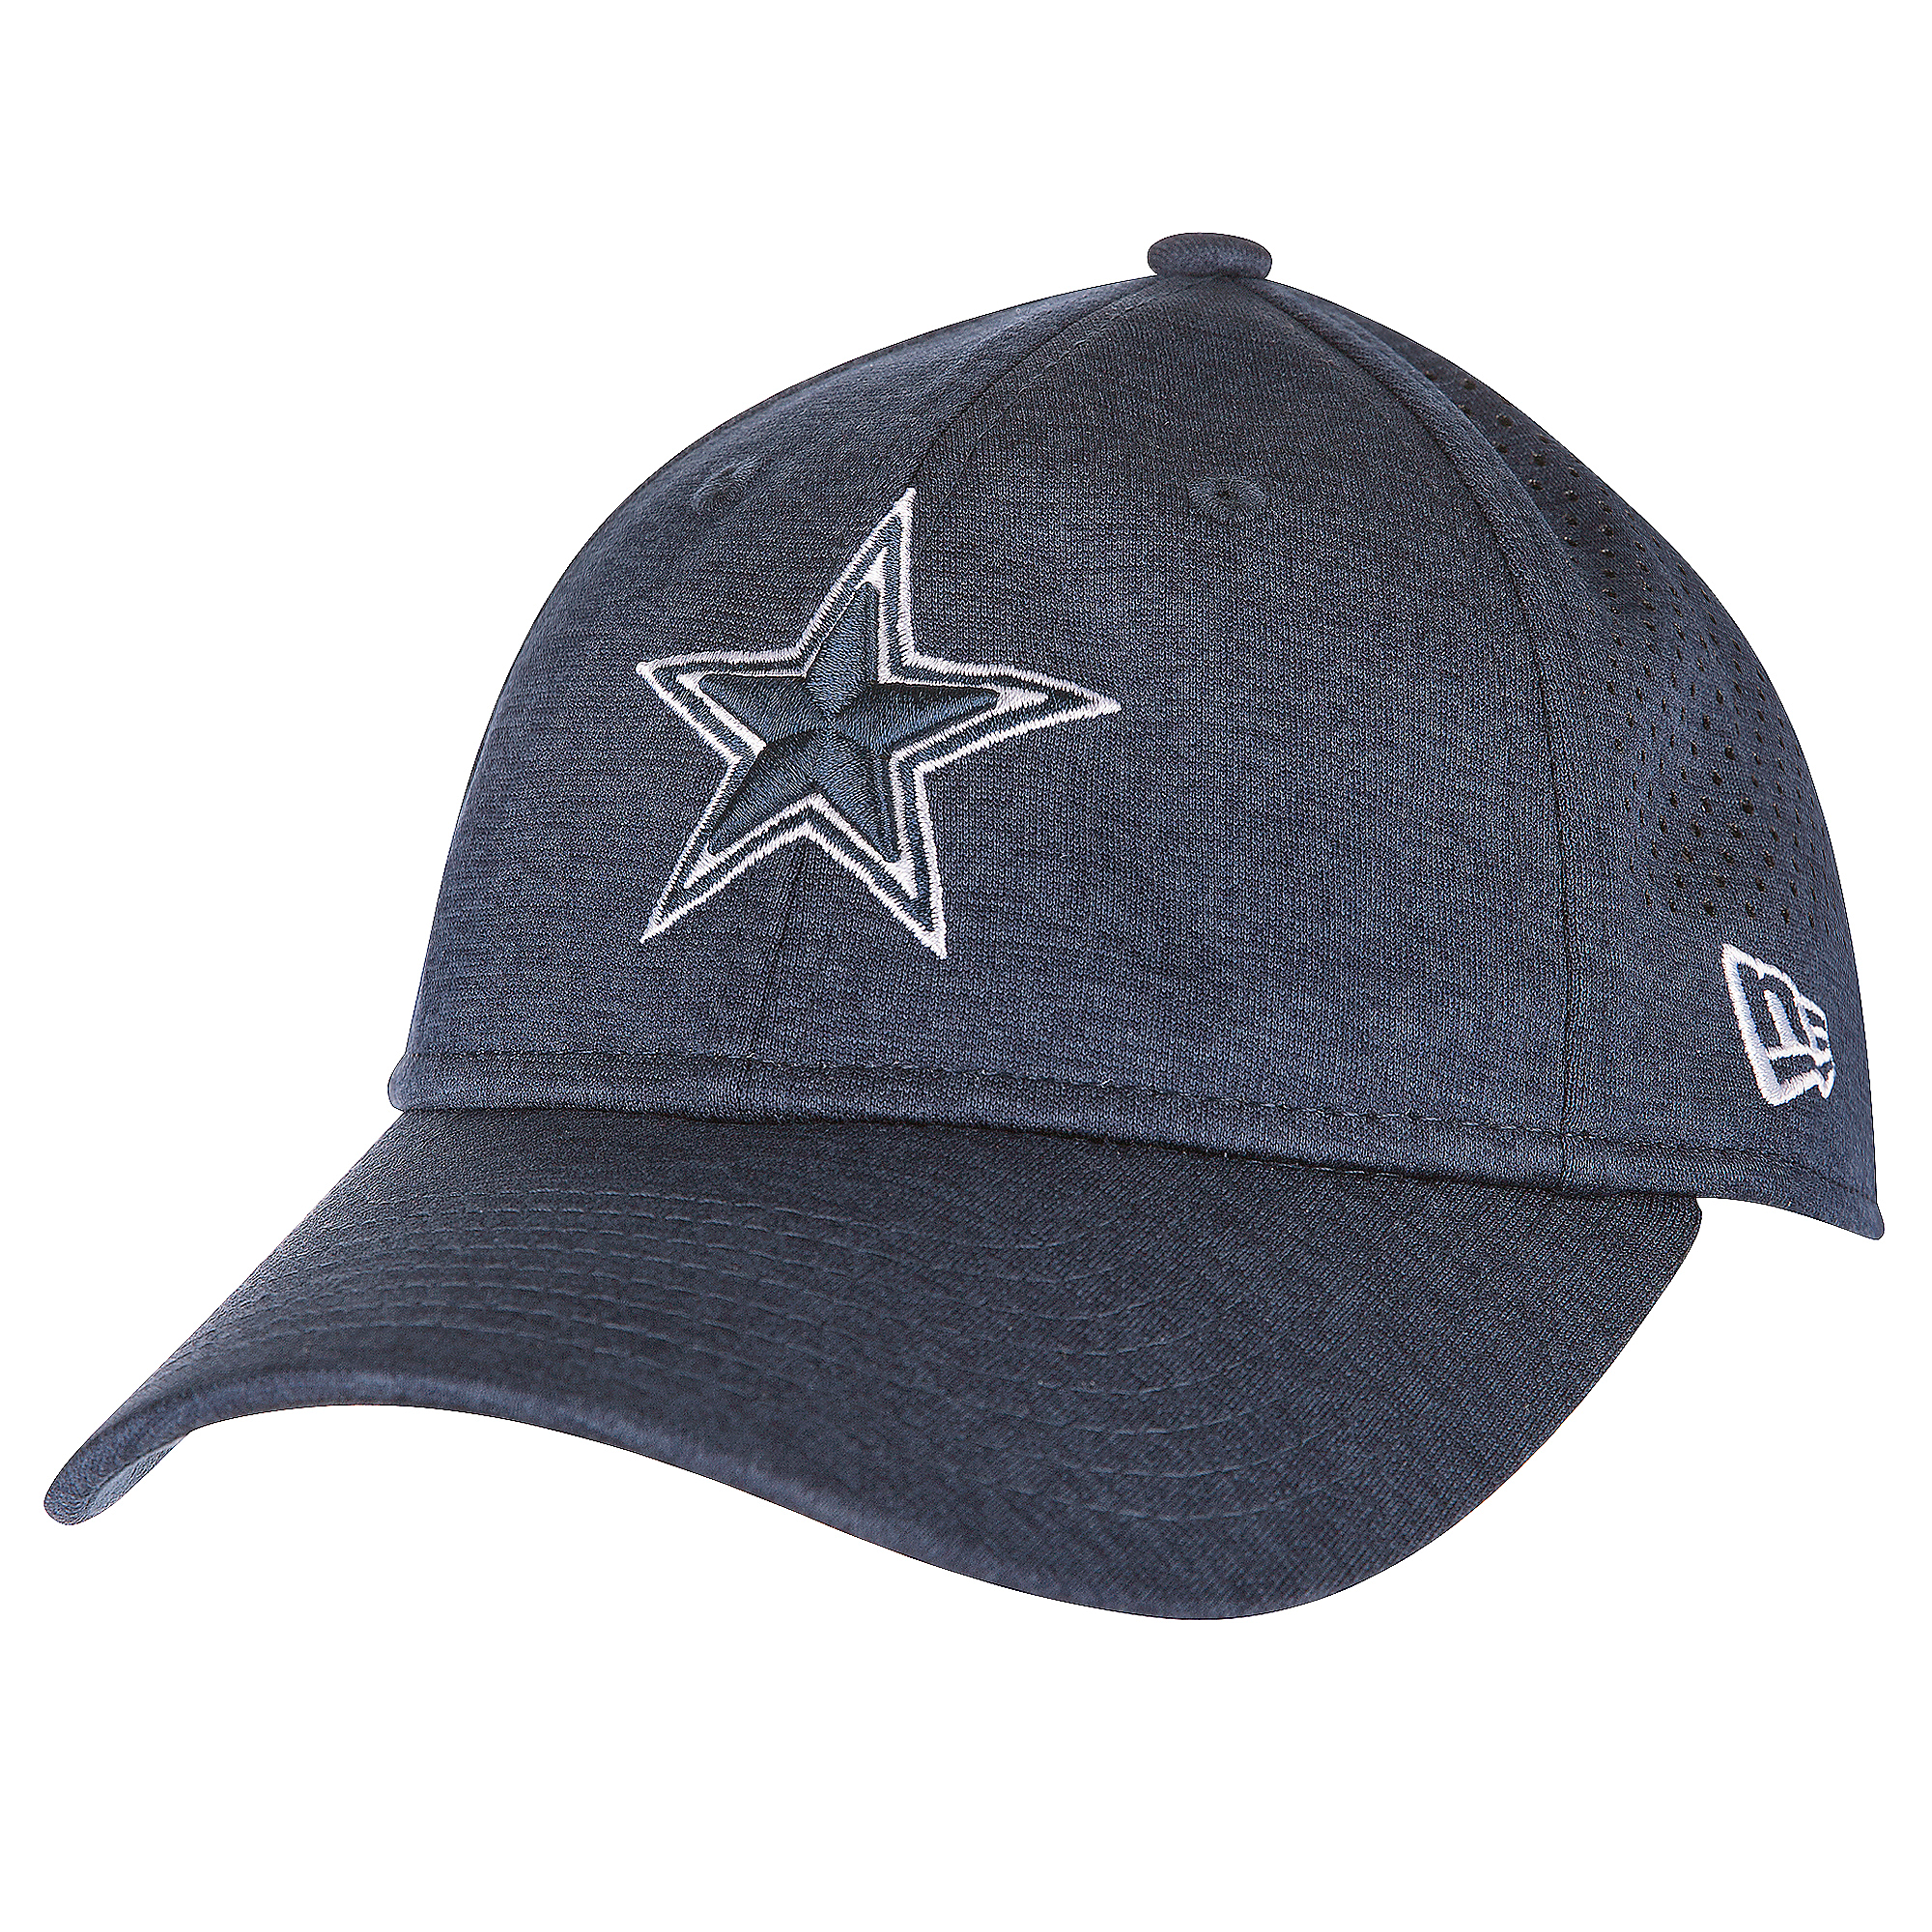 Dallas Cowboys New Era Youth Sideline 9Twenty Cap